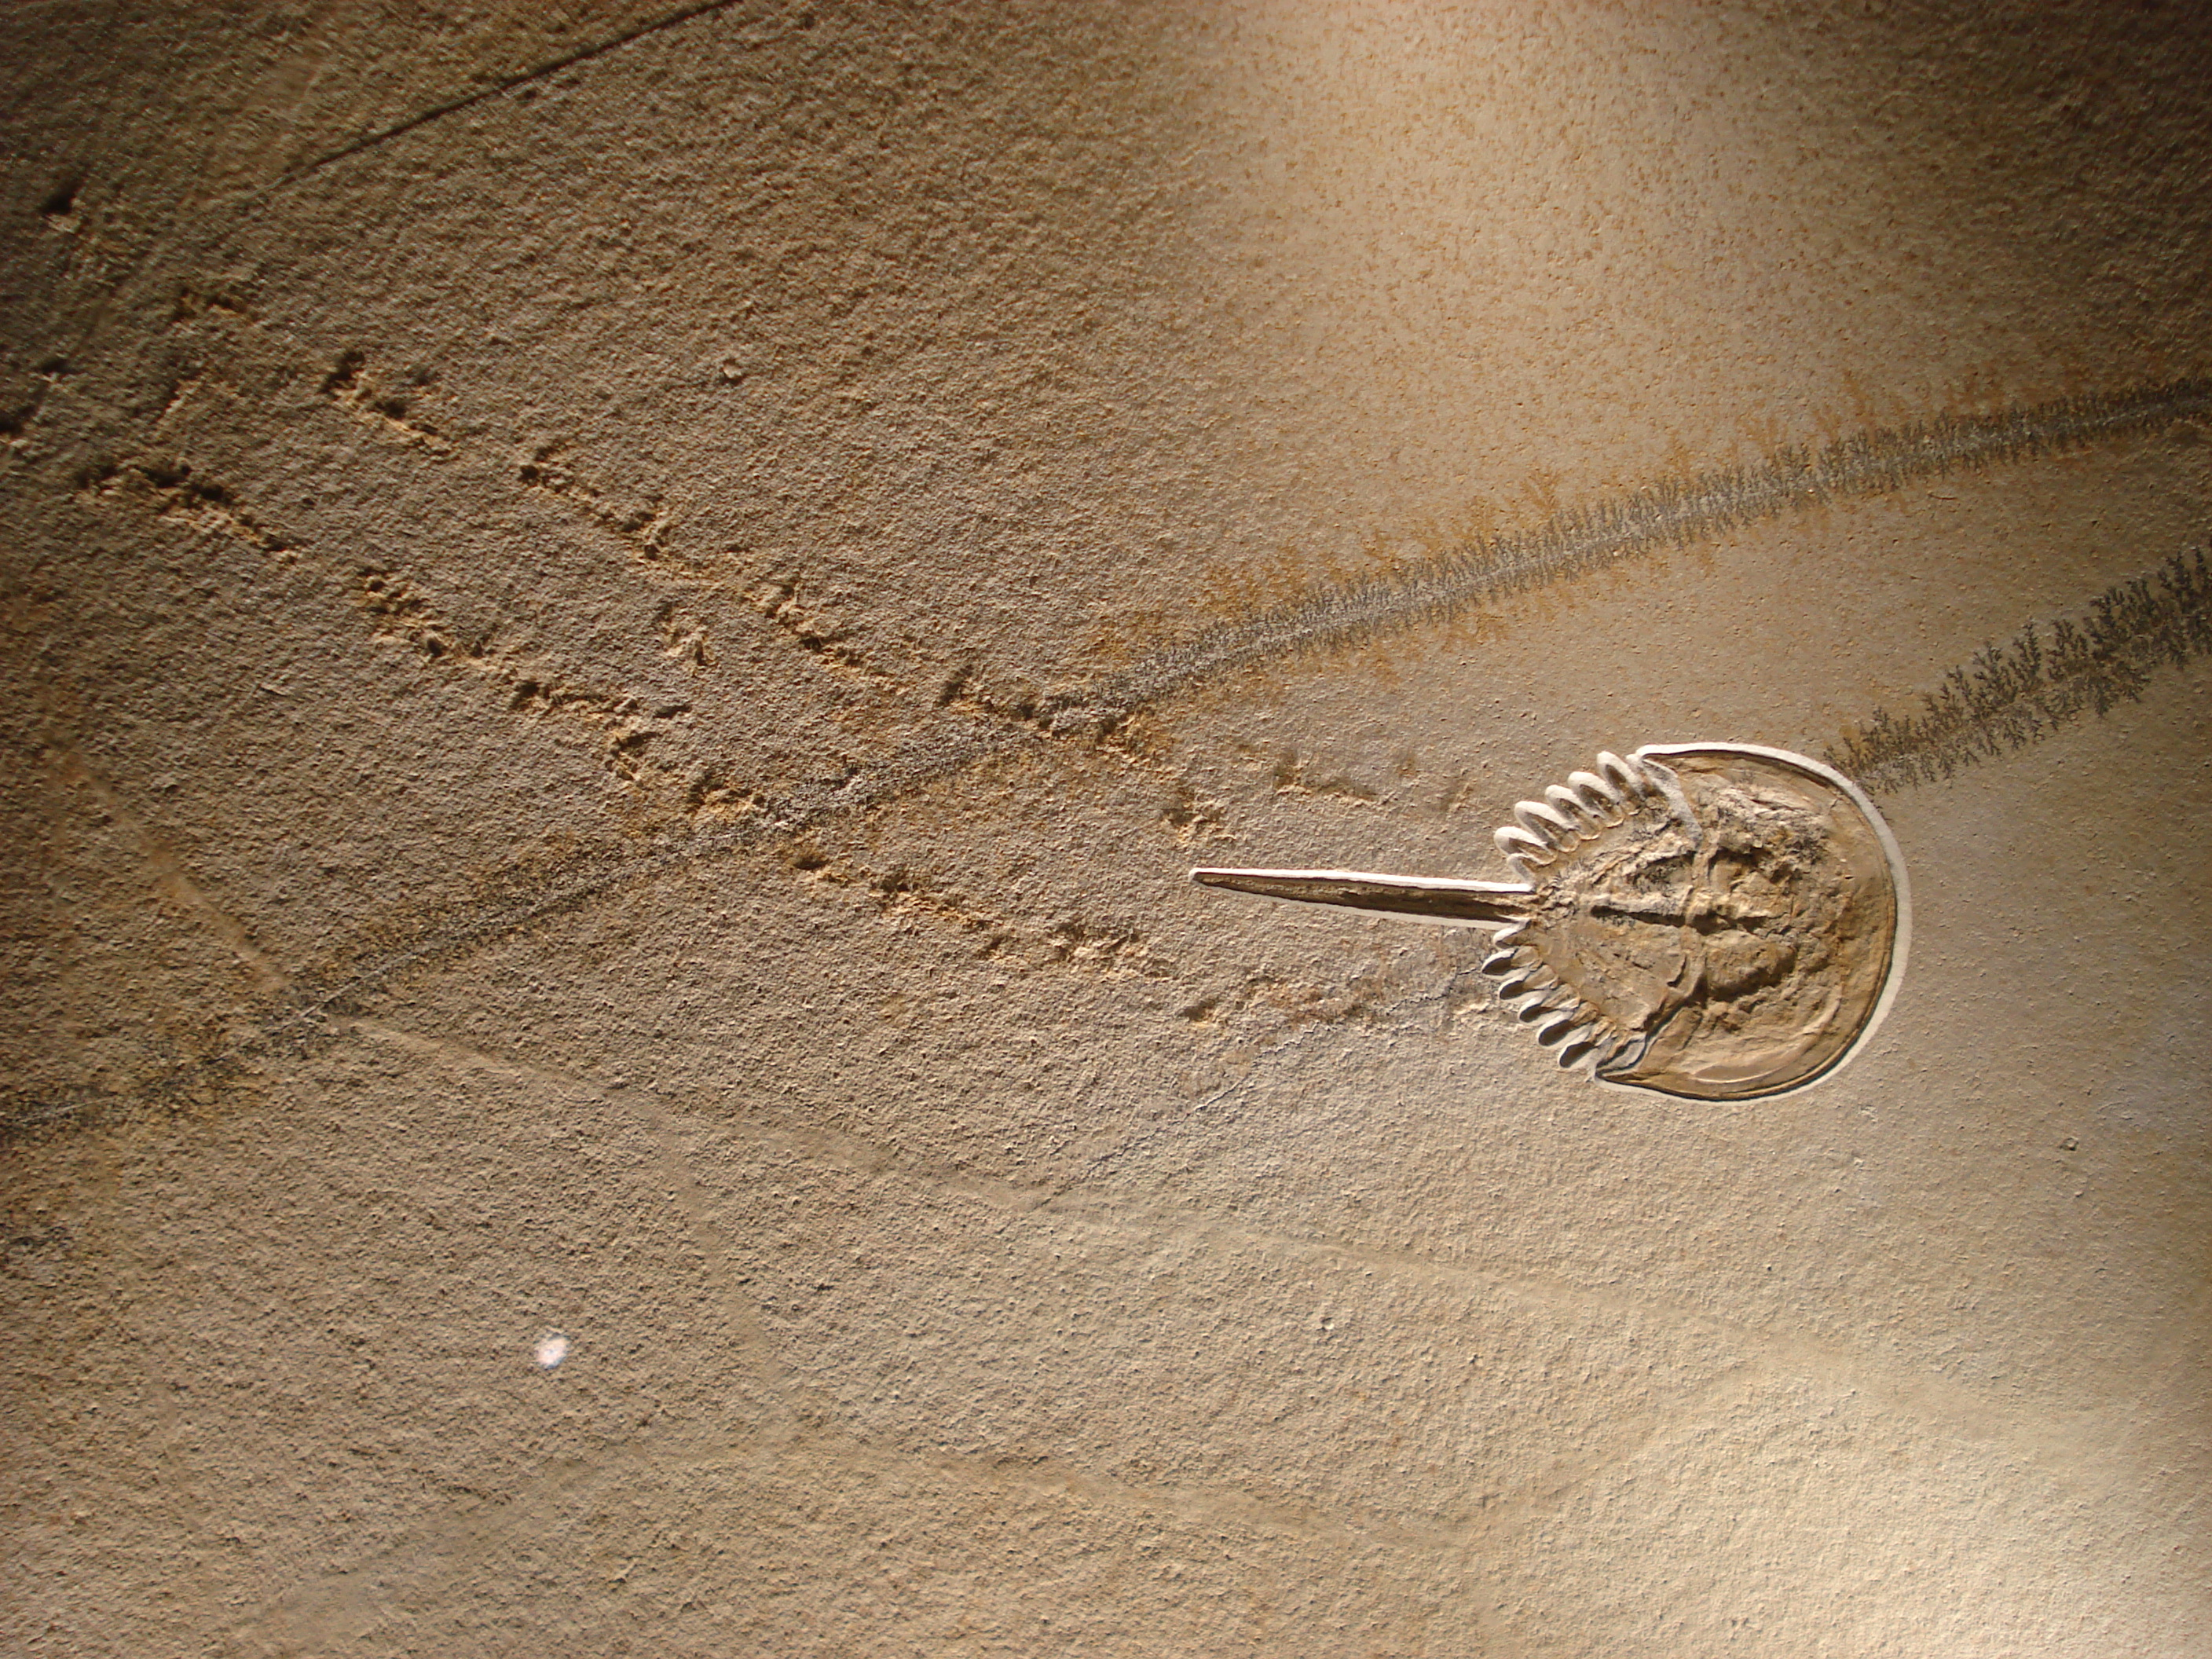 Horseshoe crab fossil in the sand